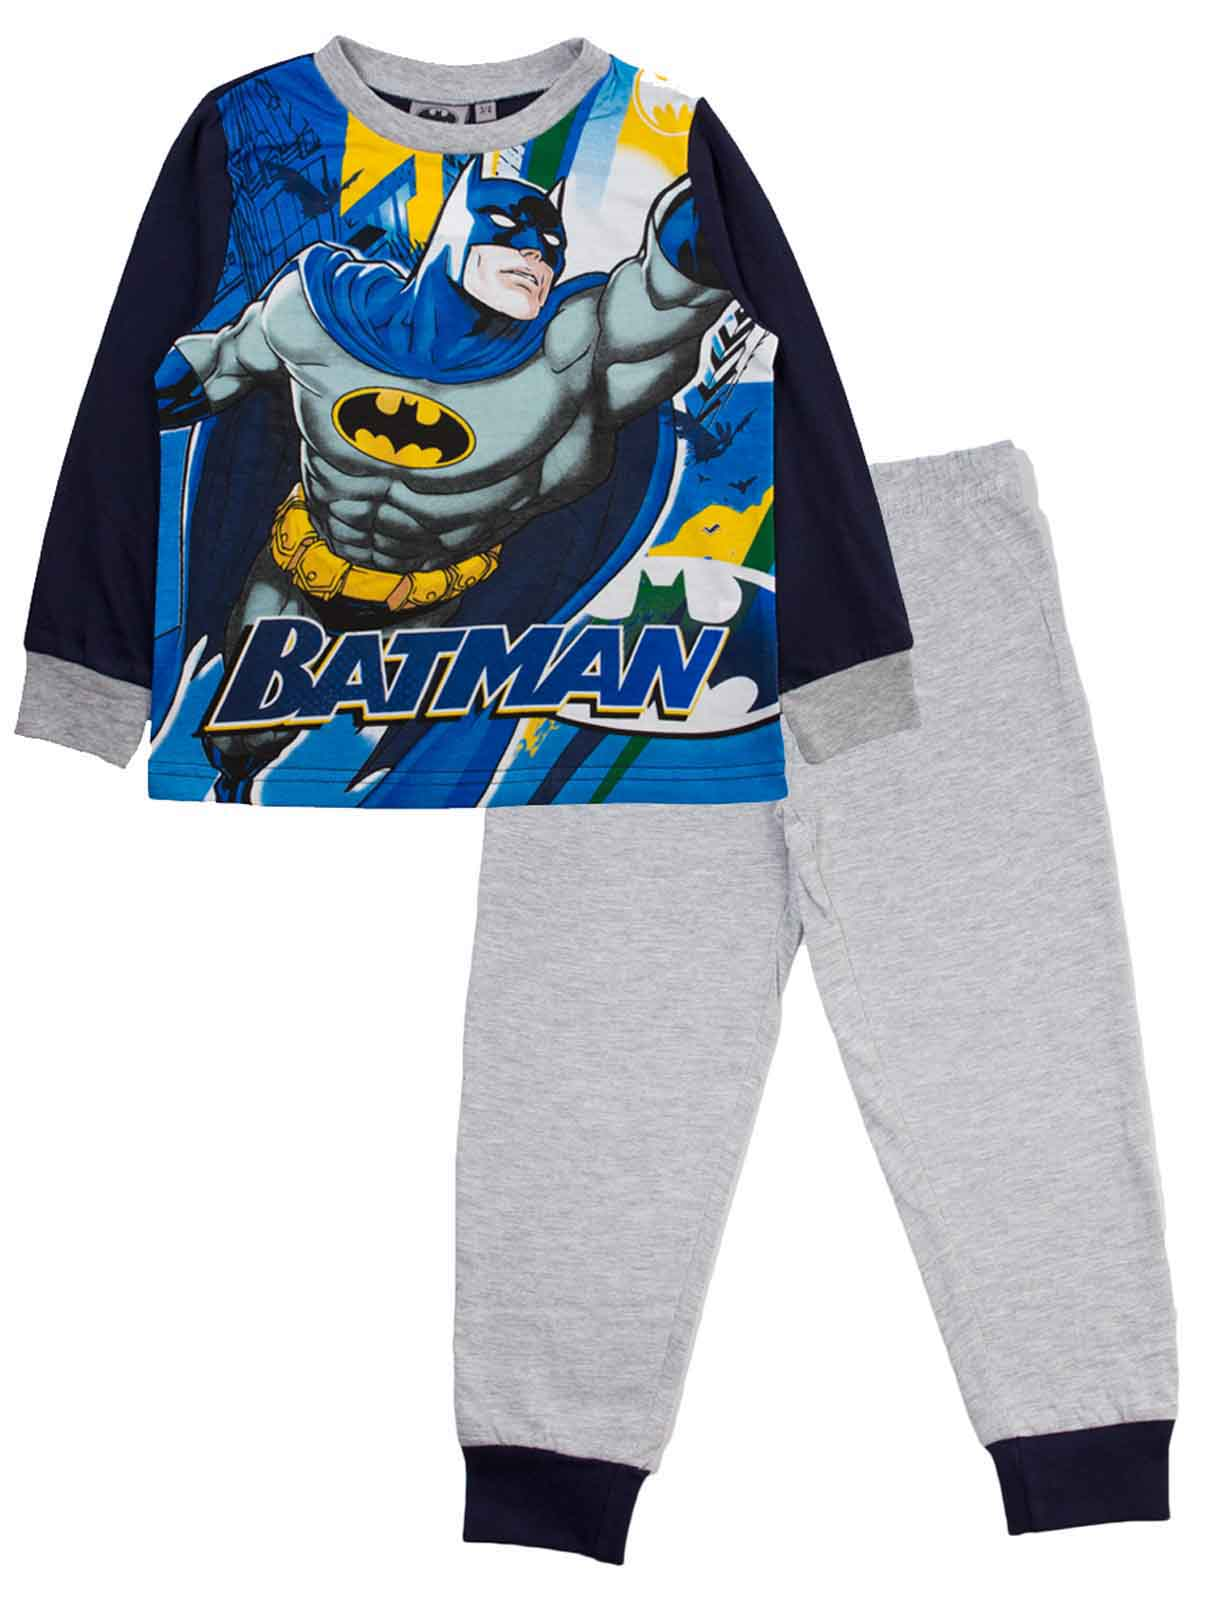 Find great deals on eBay for boys batman pajamas. Shop with confidence.